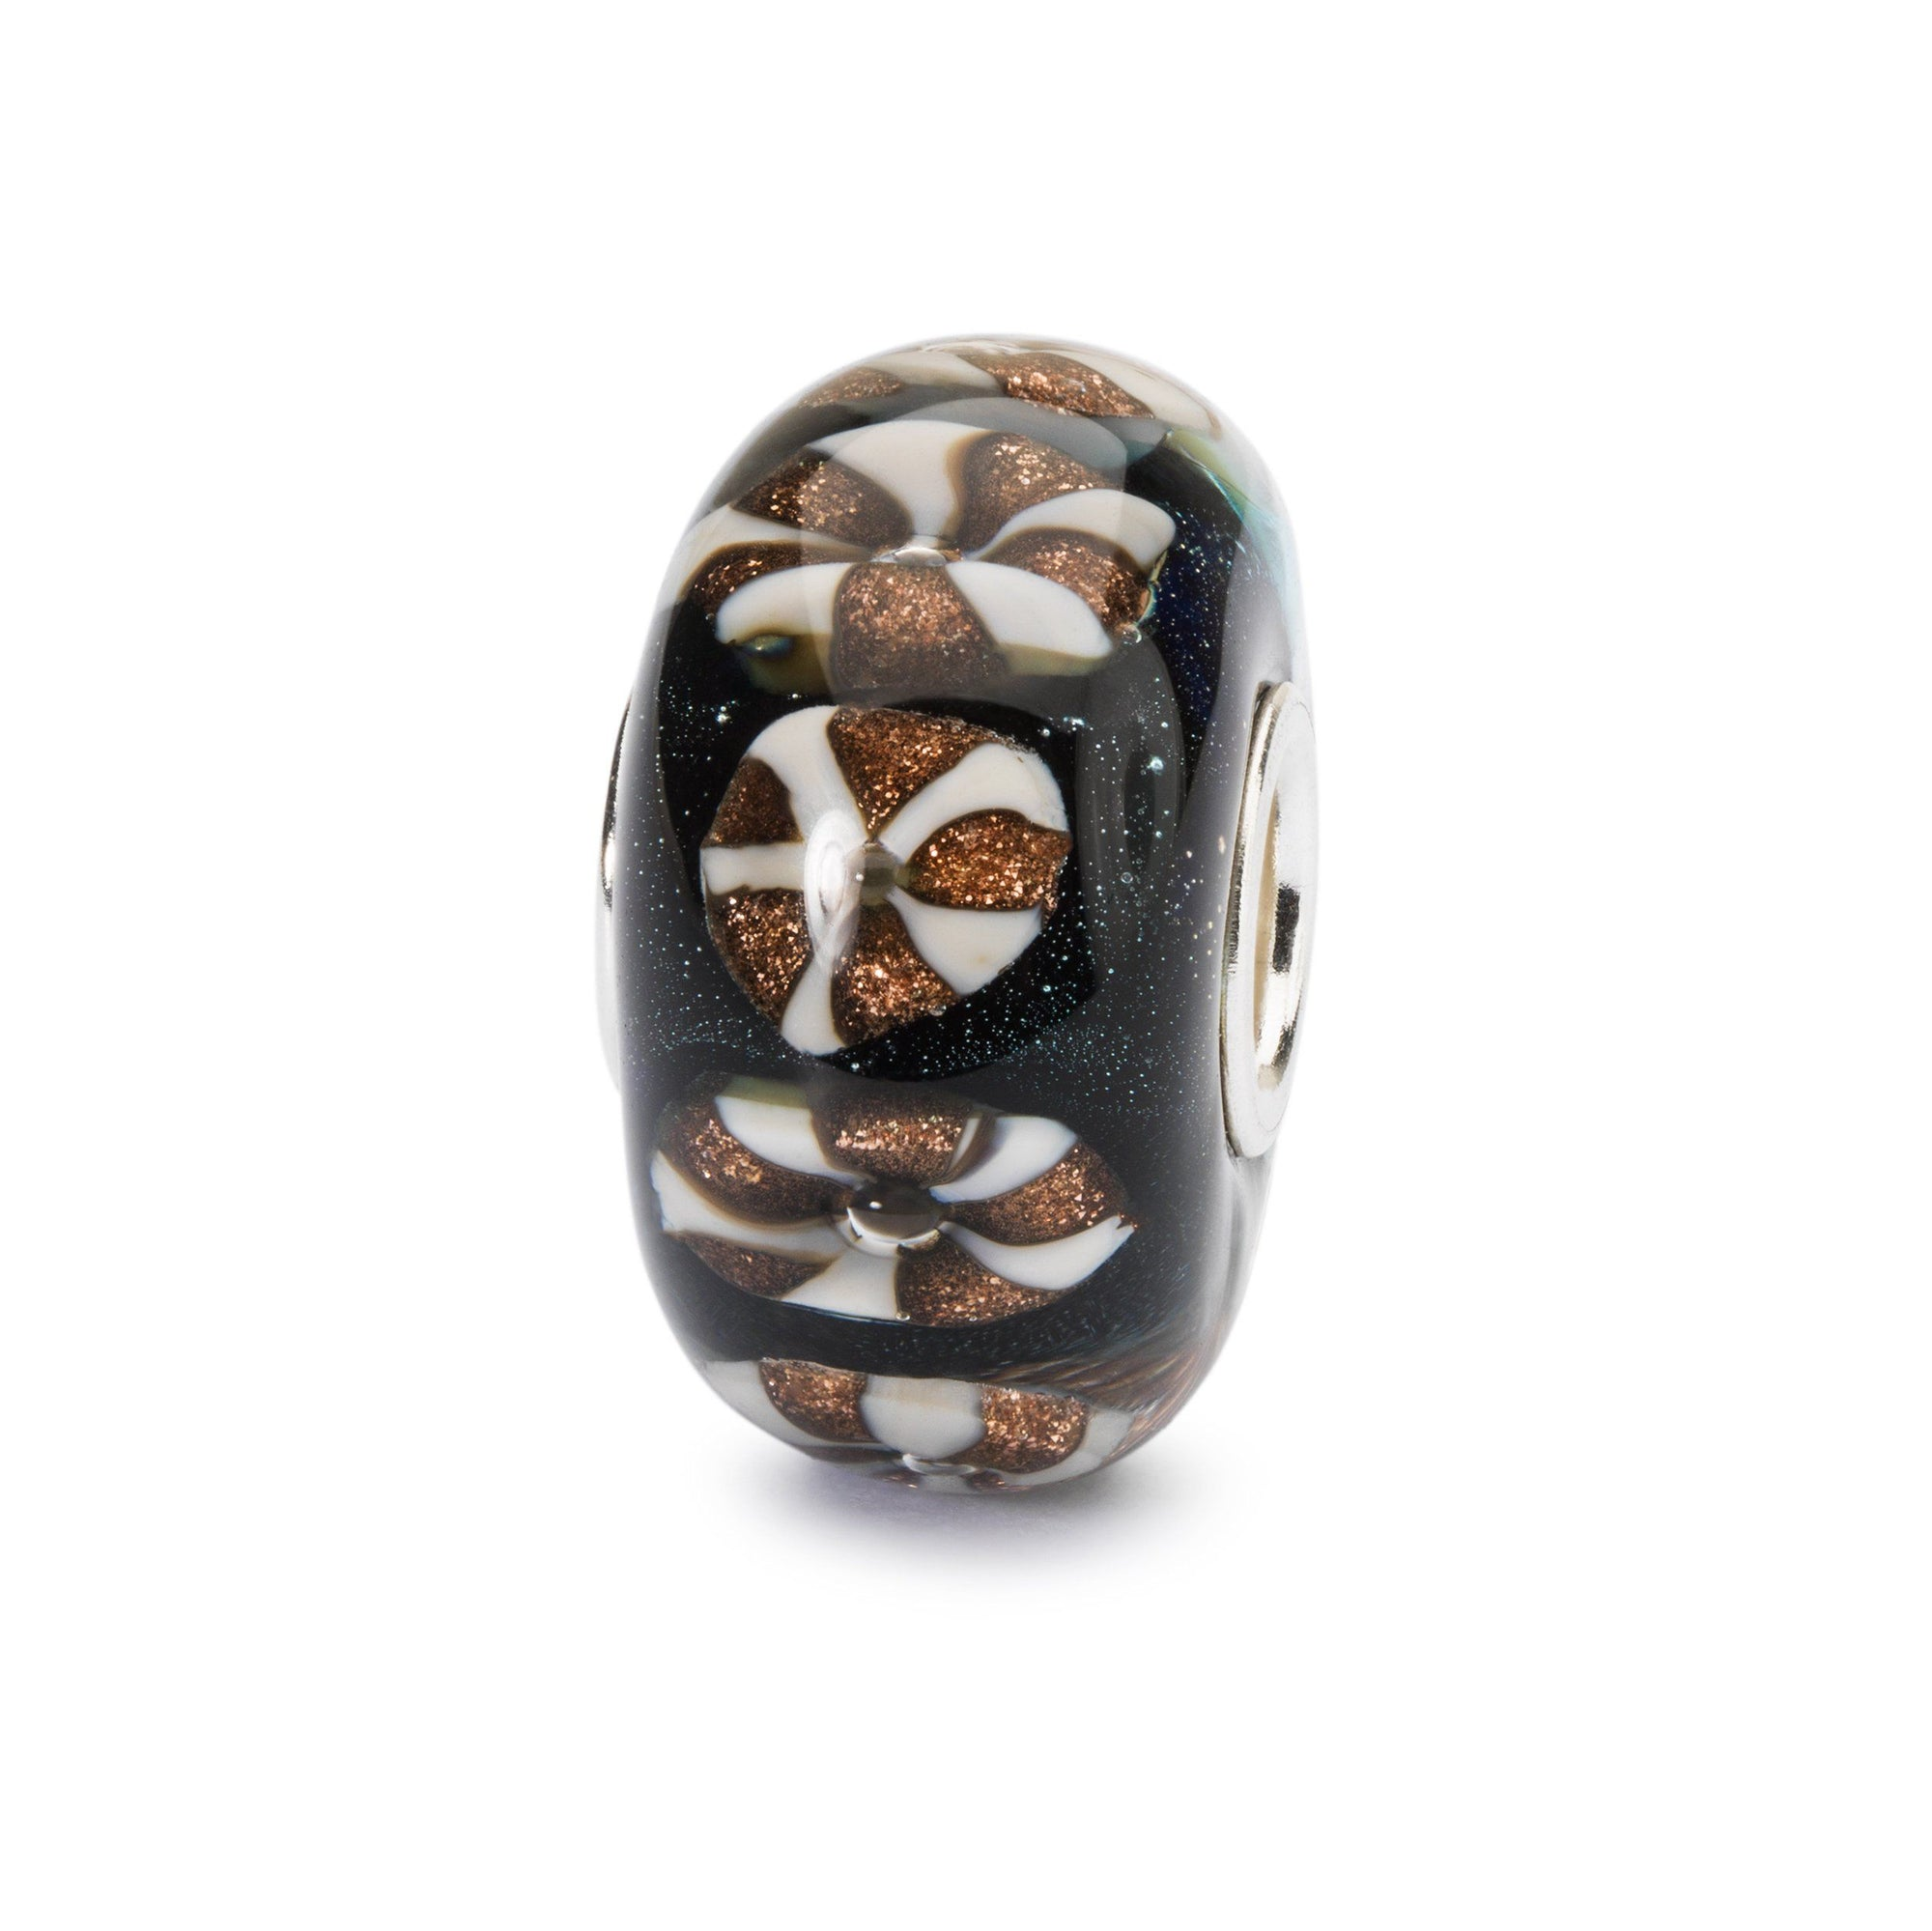 Modern glass charm bead in black with star-like specks of glitter, overlaid with alternate white and golden-glitter wheels.